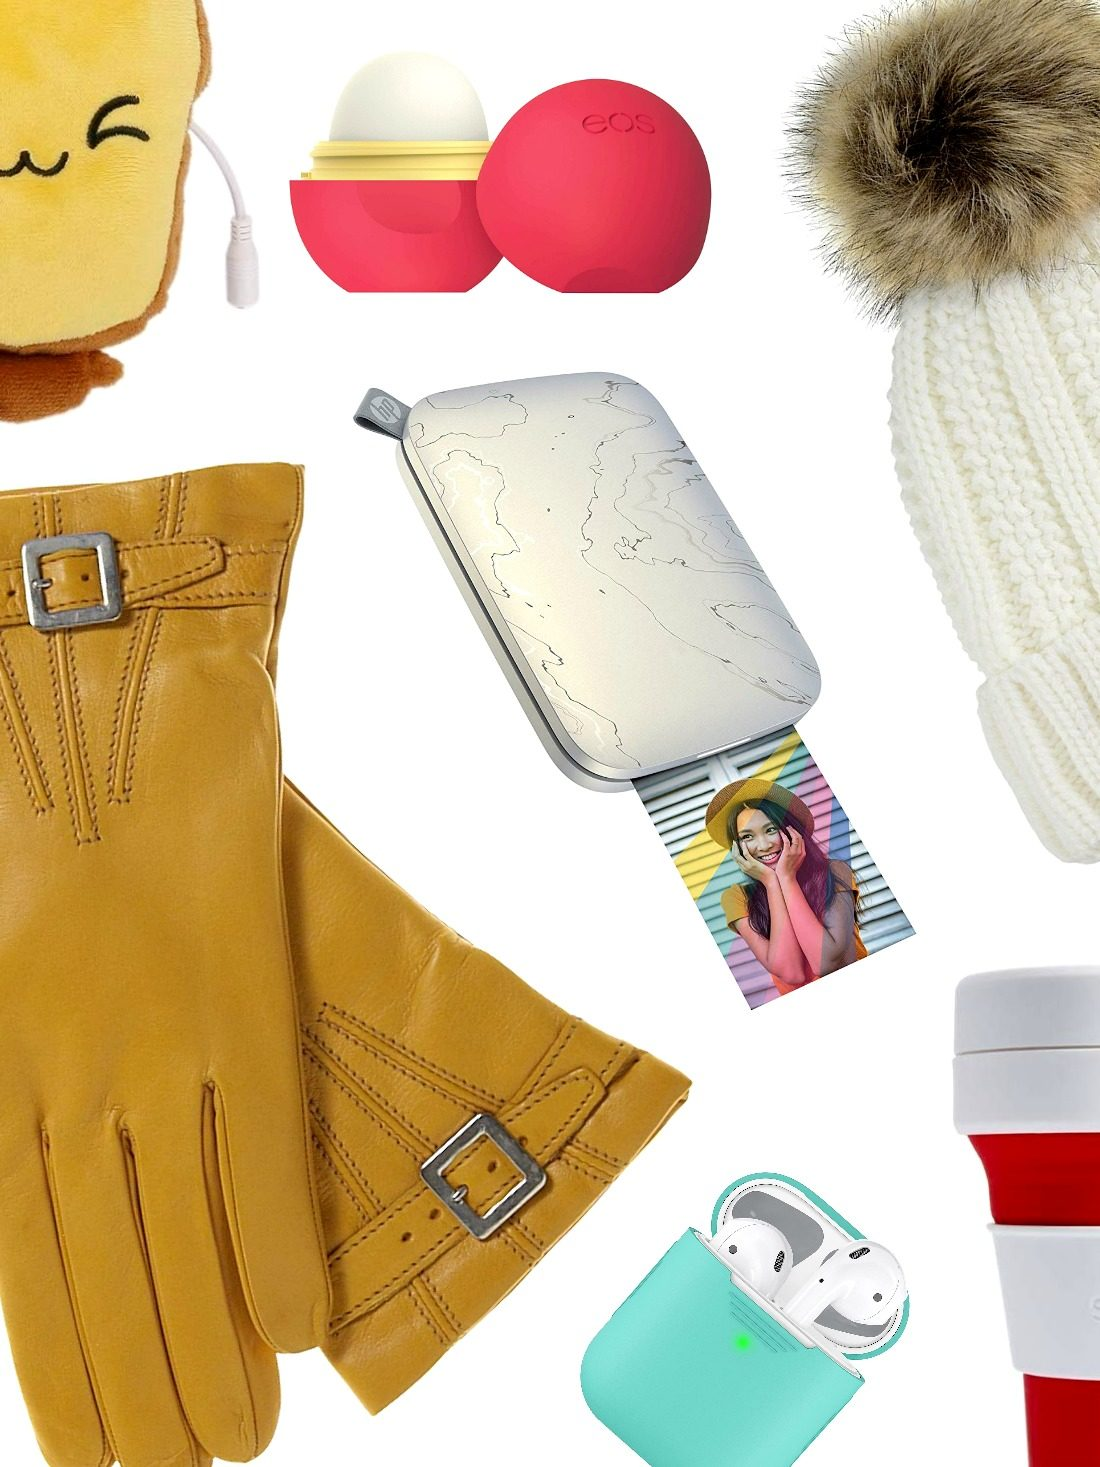 Do you get holiday shopping done at the last-minute? Nevermind, we let you shop smart and shop early with these Best Stocking Stuffers For Her.